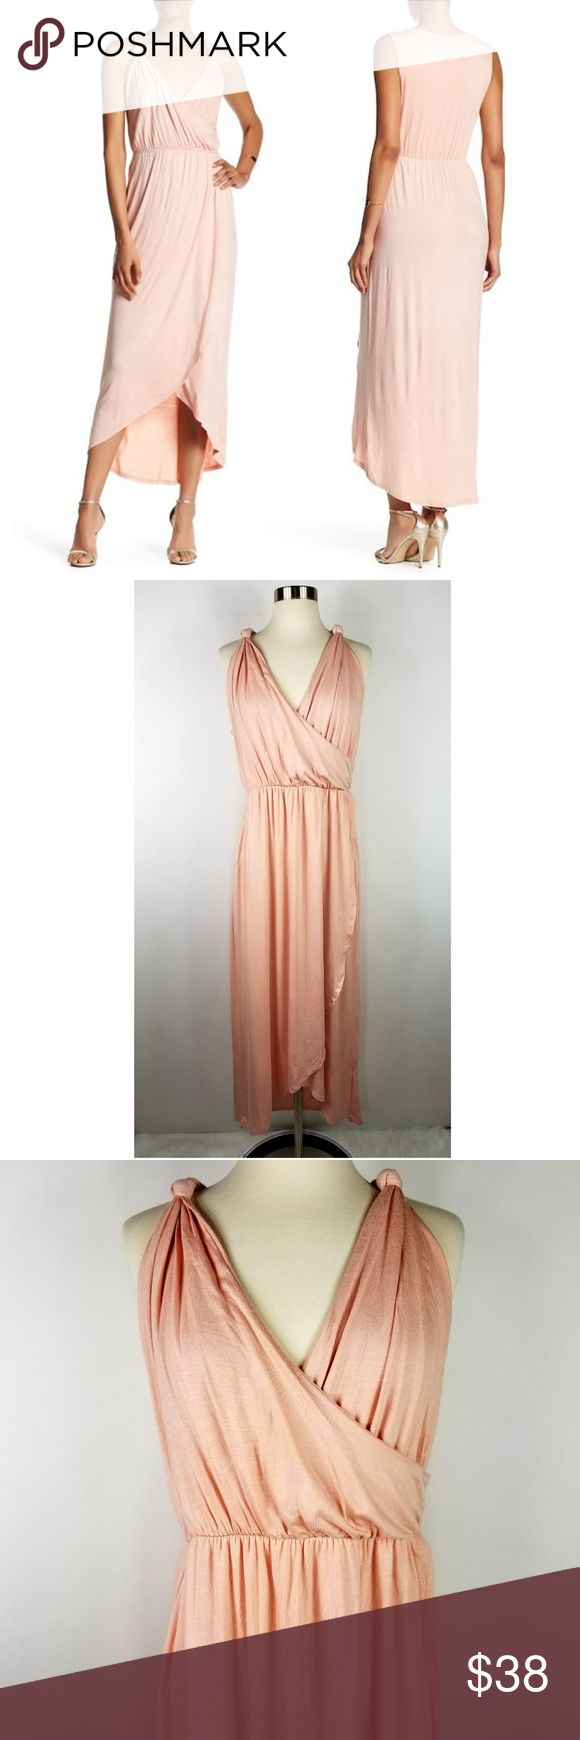 """The Vanity Room Surplice Knot Dress in Blush The Vanity Room surplice knot strap jersey knit dress. Size XL. Made of a stretchy rayon spandex blend. New with tags. (Sku:BN-B)  20"""" armpit to armpit  14"""" across at waist unstretched; 20"""" across when stretched 20"""" across at hip 50"""" long in front; 58"""" long in back Vanity Dresses Maxi"""